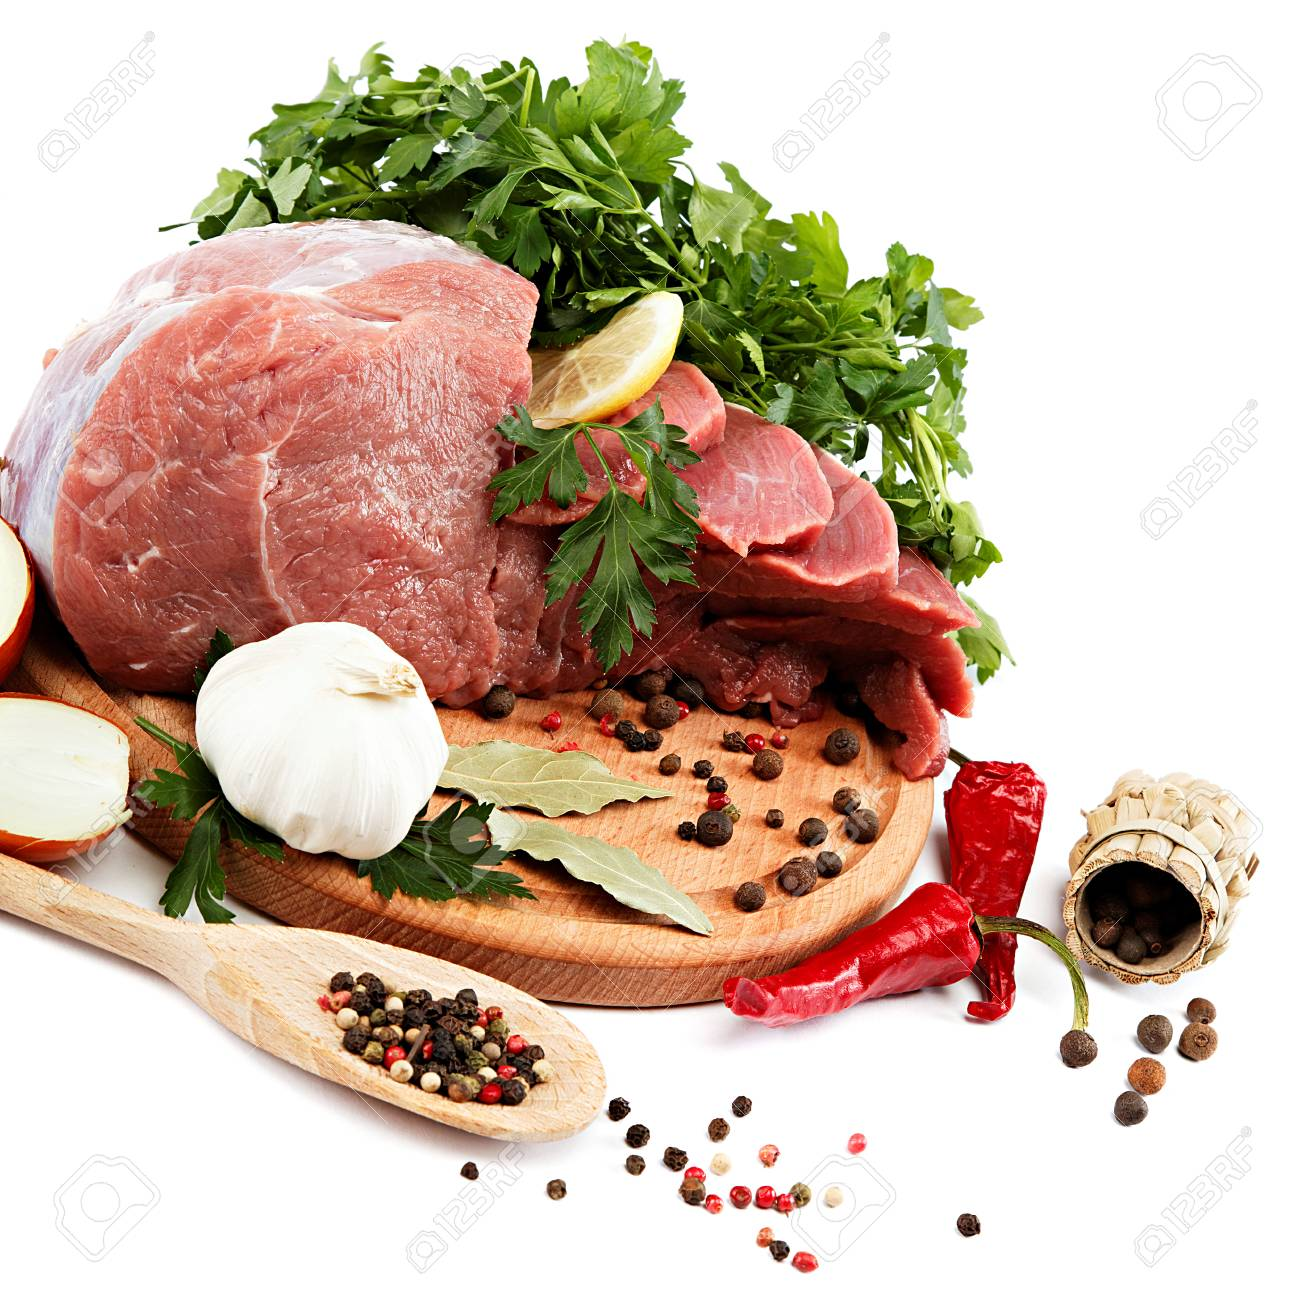 Raw meat, vegetables and spices on a wooden cutting board isolated on white background. - 30908226